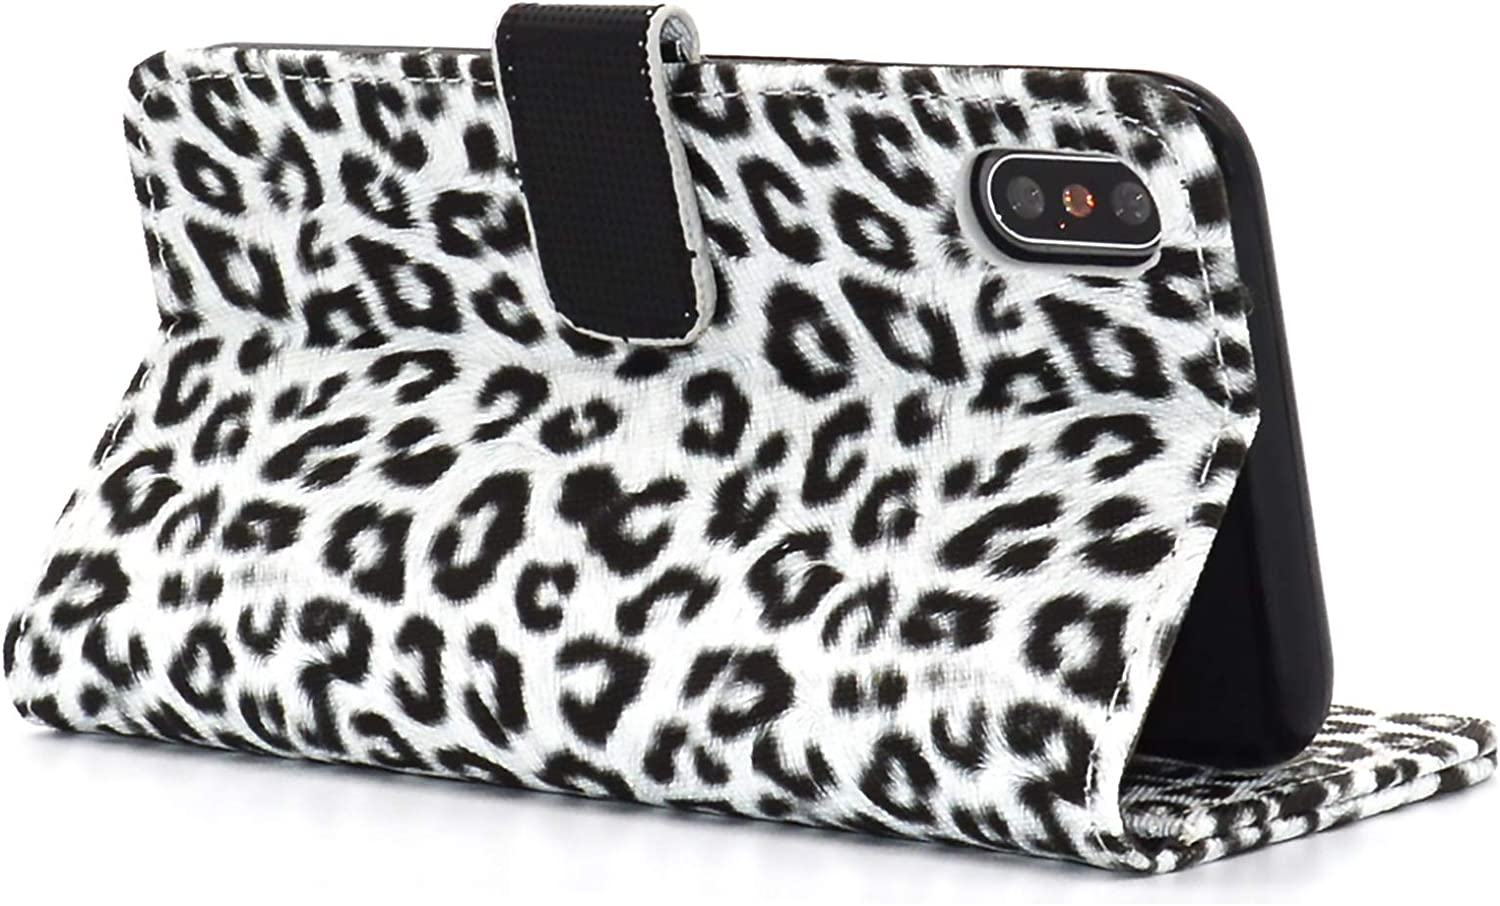 Chanroy Compatible with iPhone Xs Max(6.5 inch) Leather Leopard Partten Case Flip Cover - Premium Ultra Thin with Magnetic Closure Genuine Leather Wallet Book Folio Flip Case for iPhone Xs Max(White)